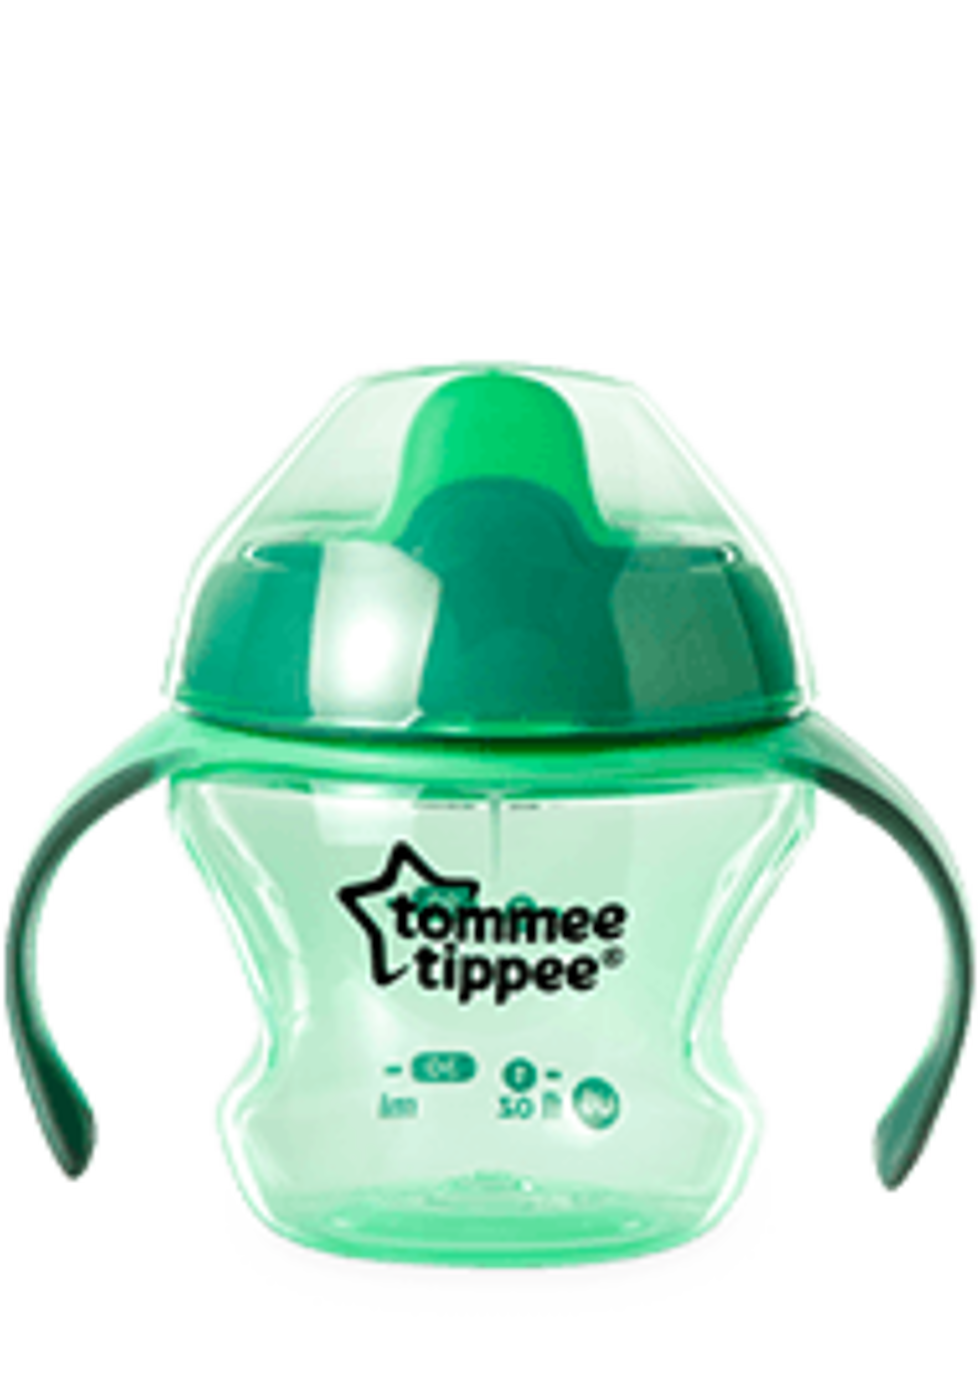 Tommee Tippee Sippy Cups Recalled